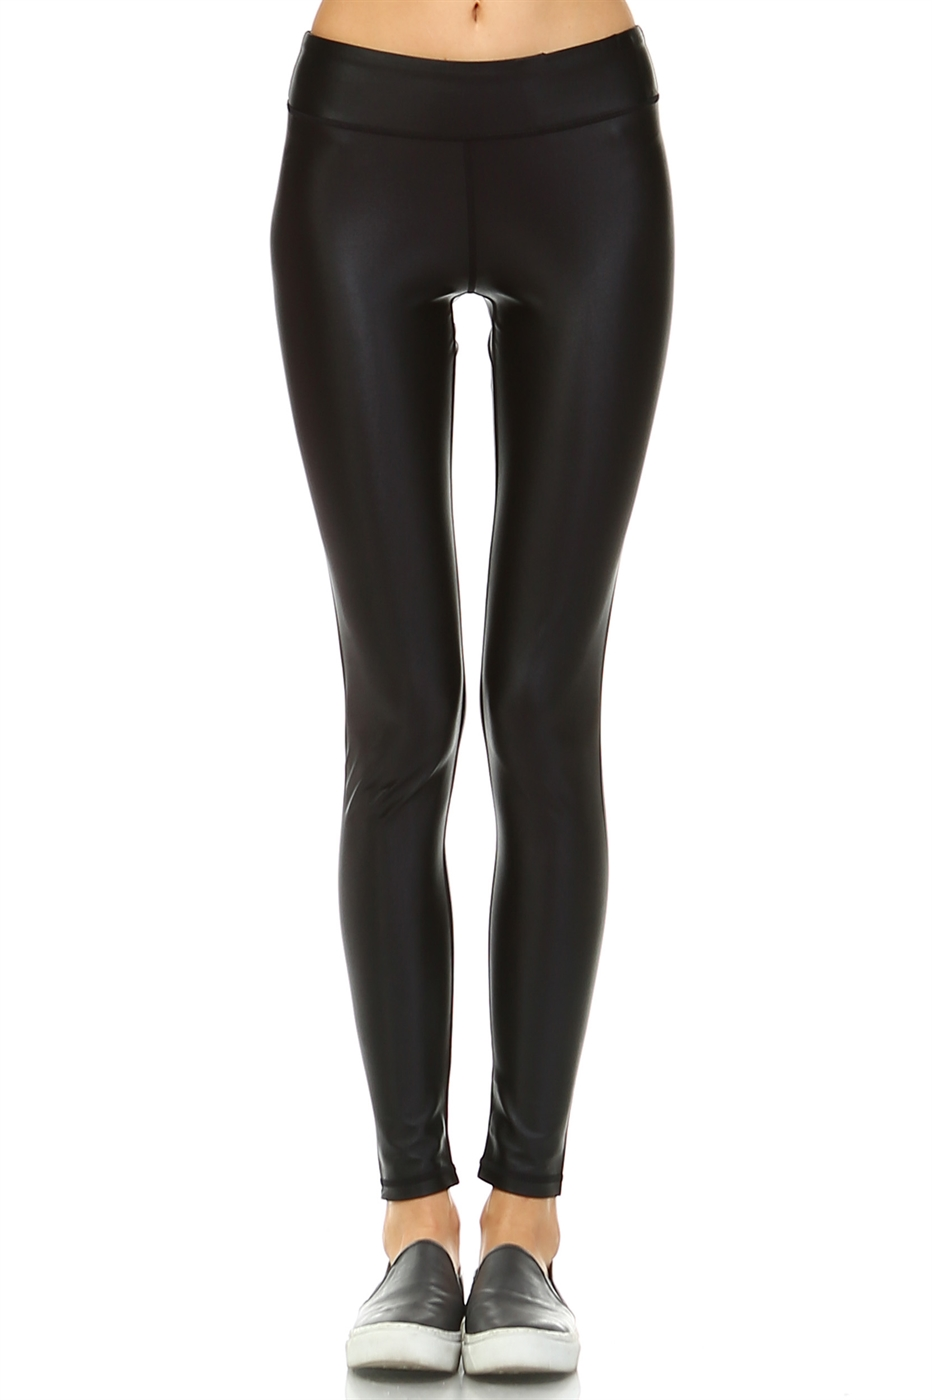 PU LEATHER LEGGINGS - orangeshine.com